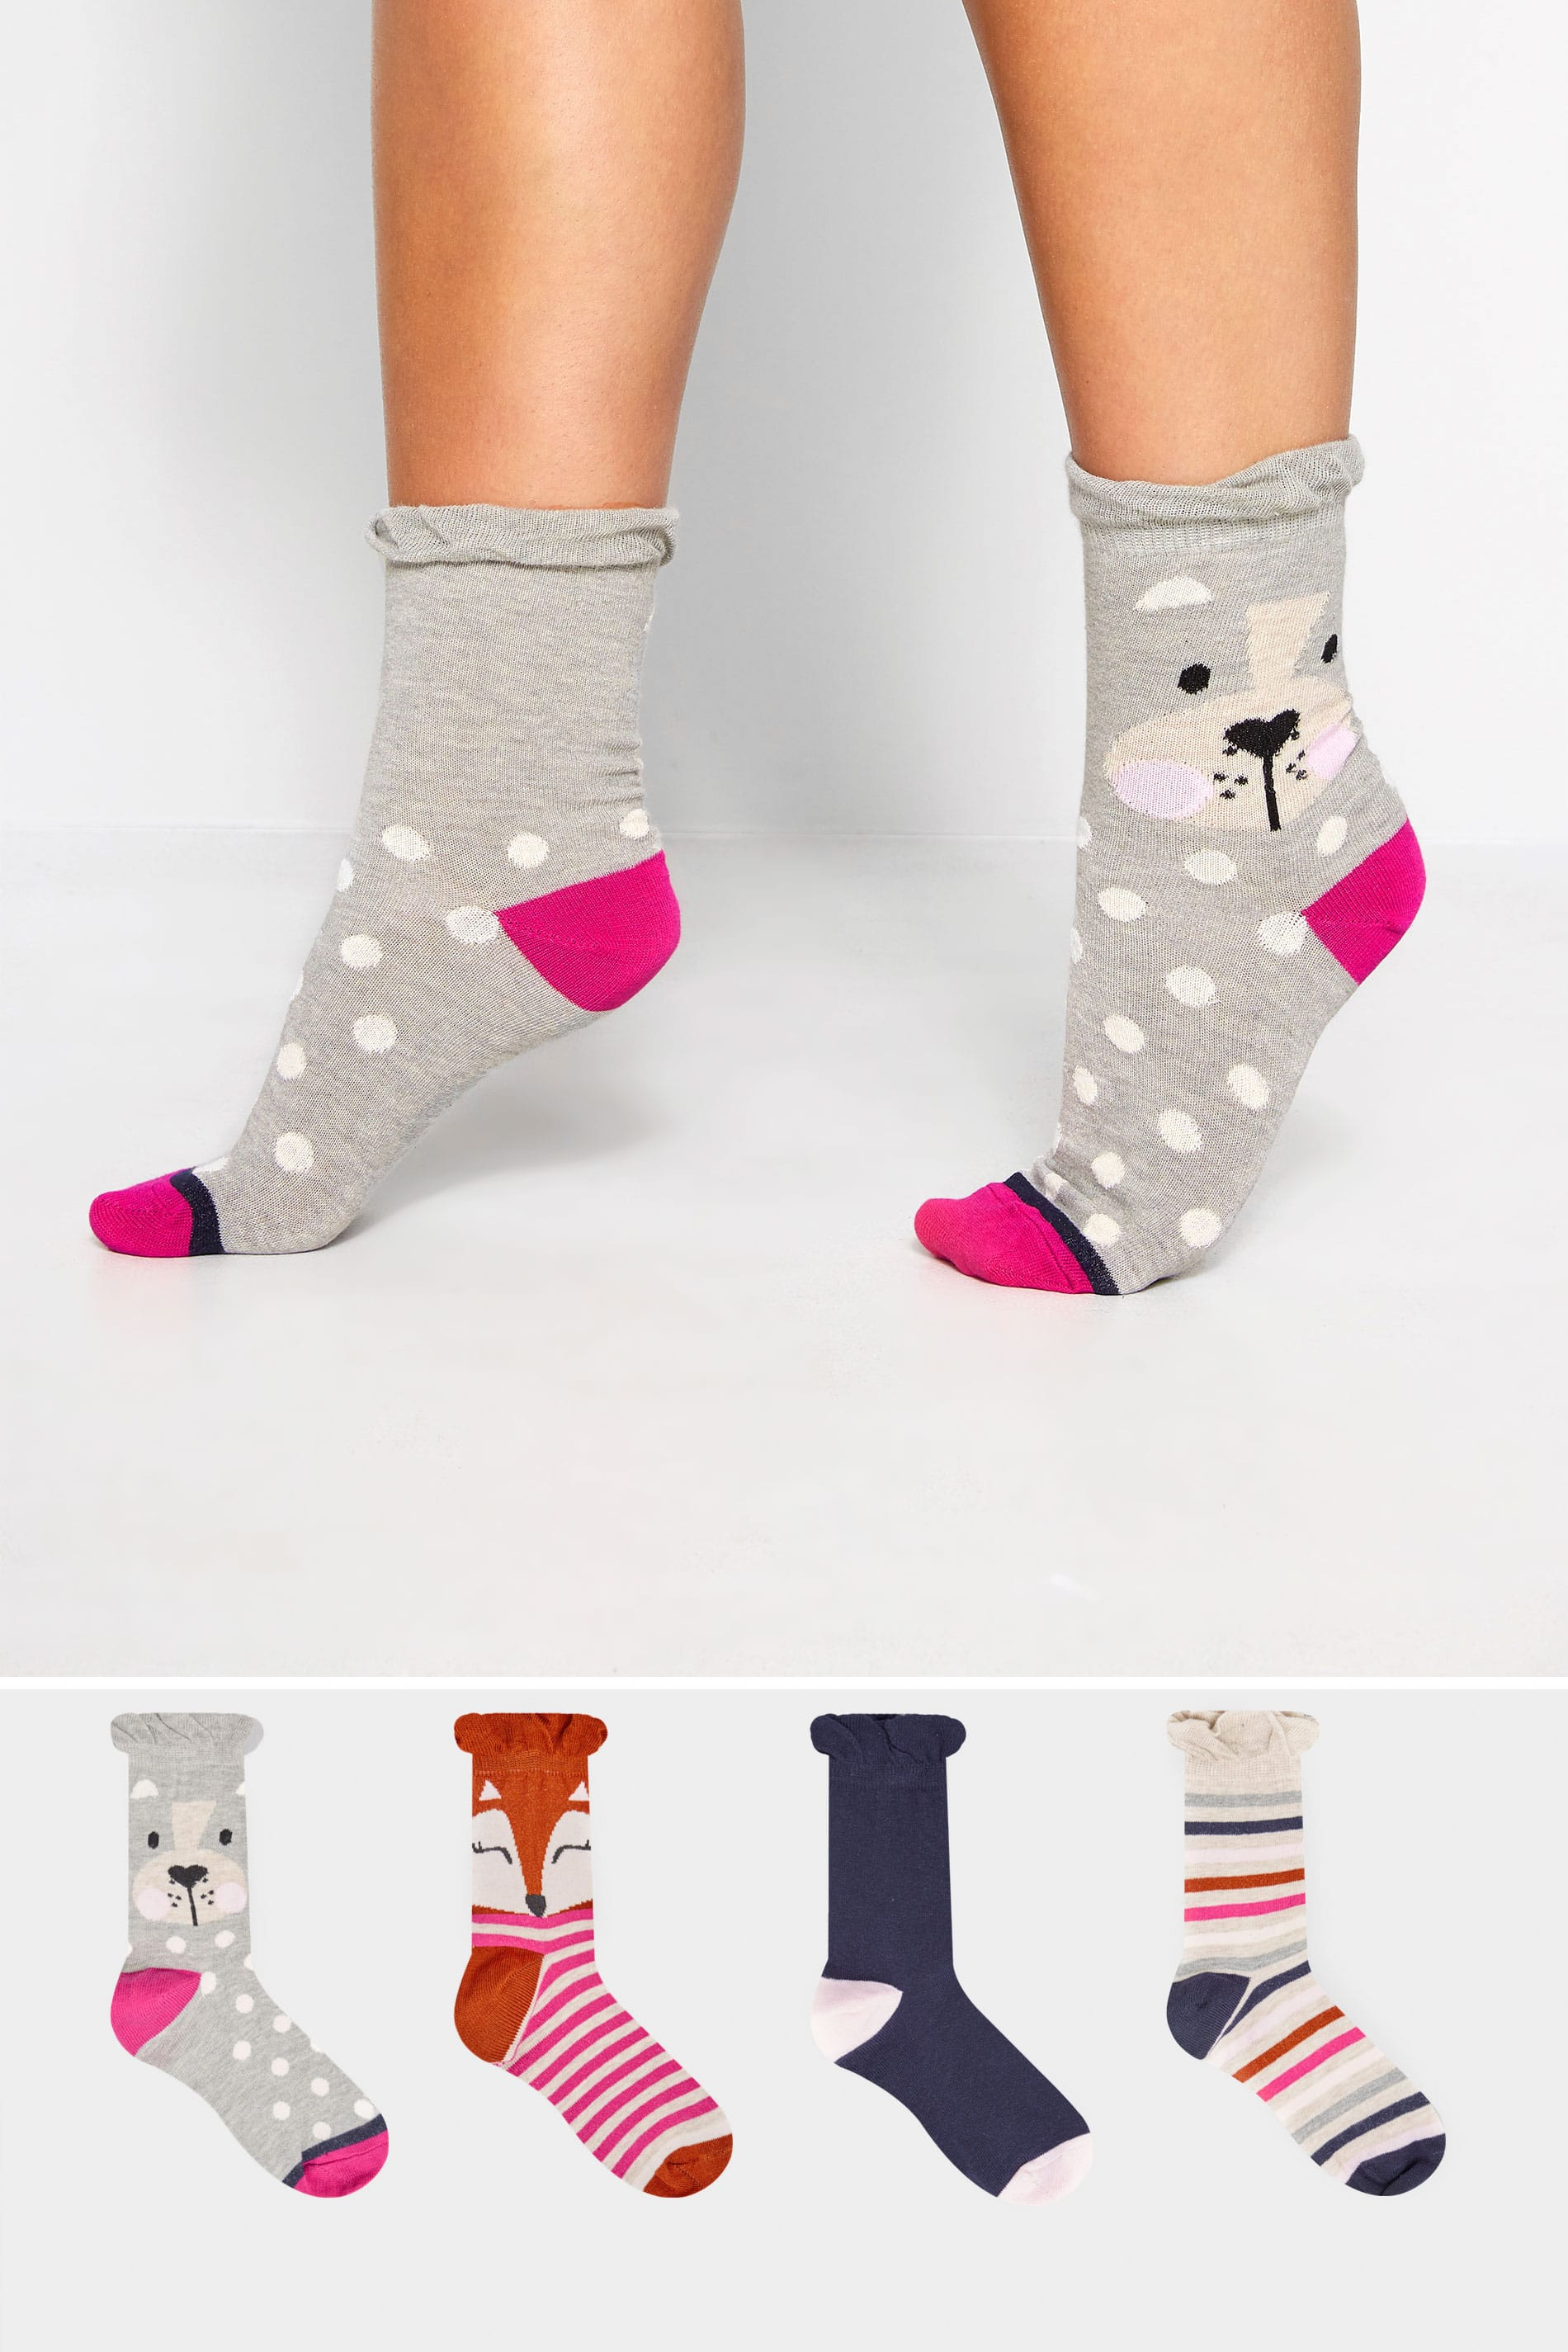 4 PACK Grey, Navy & Pink Cute Animal Socks